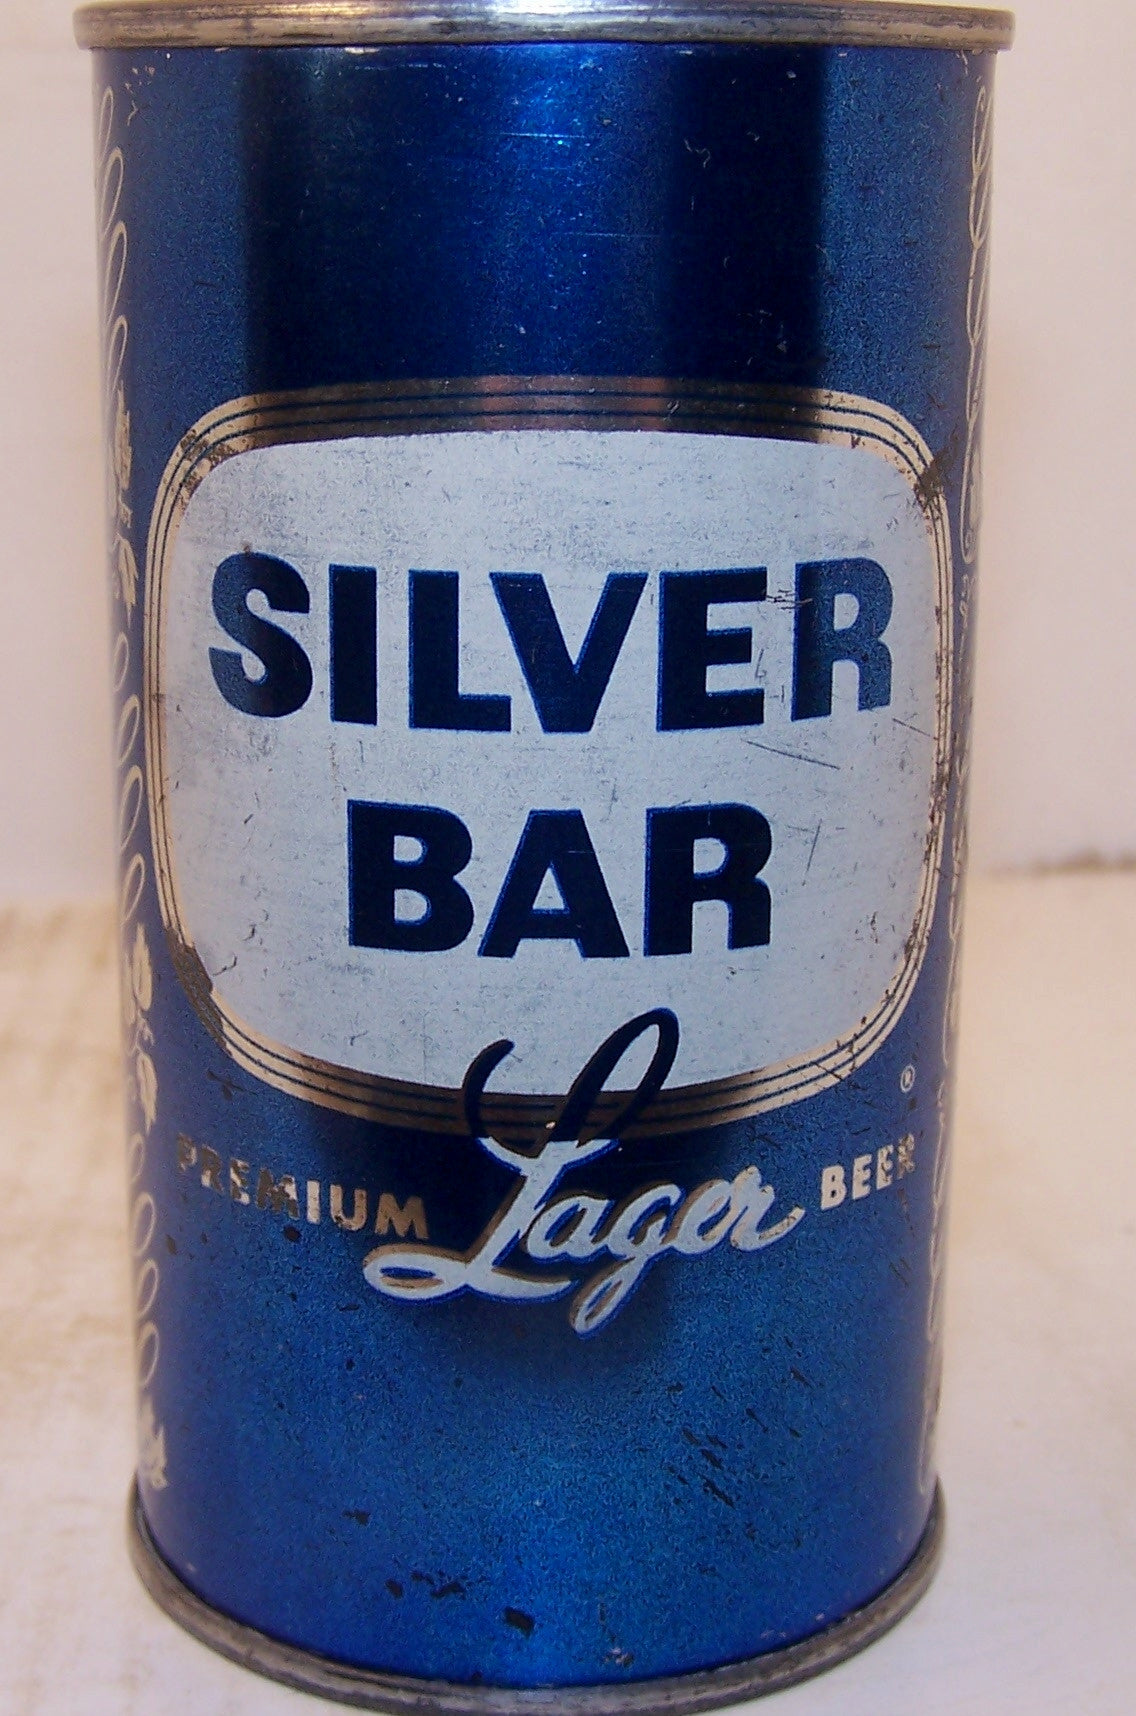 Silver Bar premium Lager Beer, (Blue set can) USBC 134-4 Grade 1/1- Sold on 09/04/17